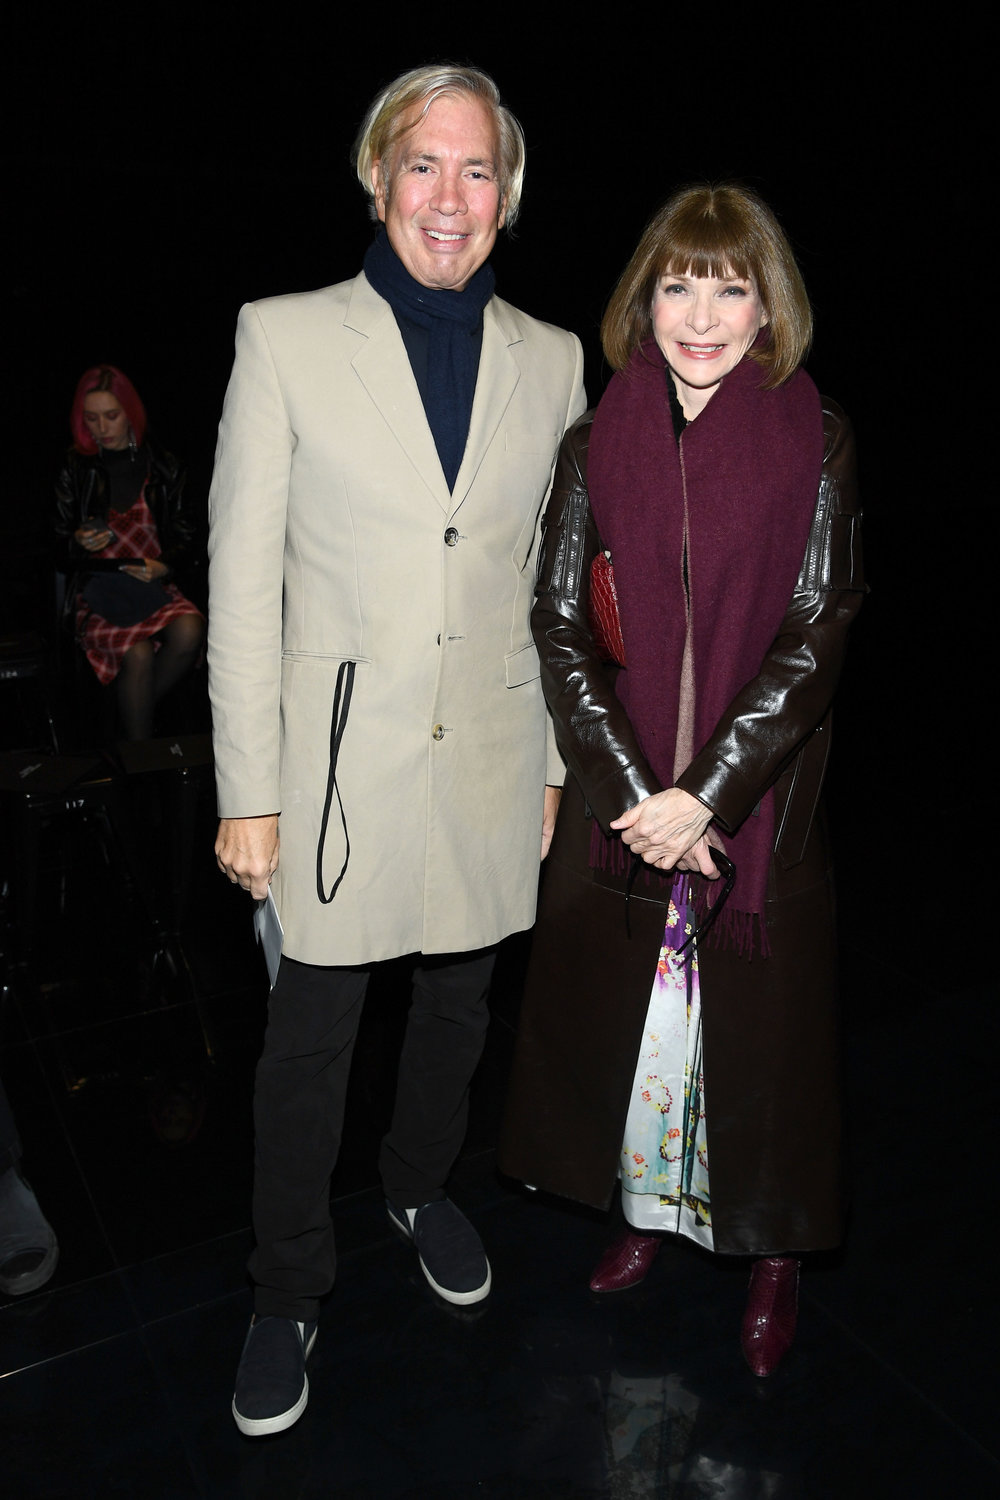 Robert Duffy and Anna Wintour.JPG